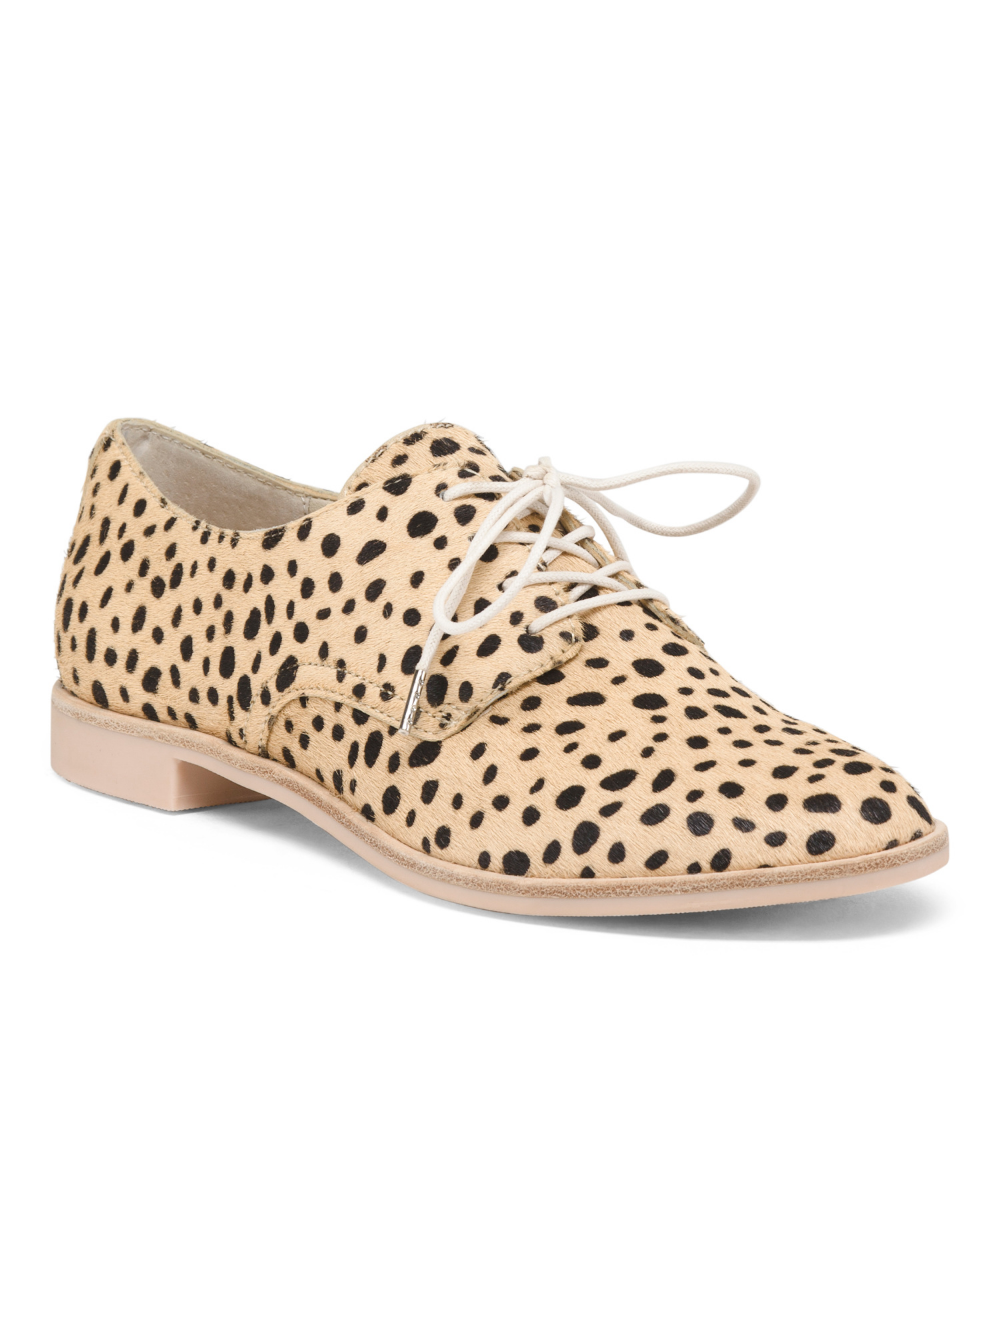 Leopard haircalf, Loafers, Dress shoes men